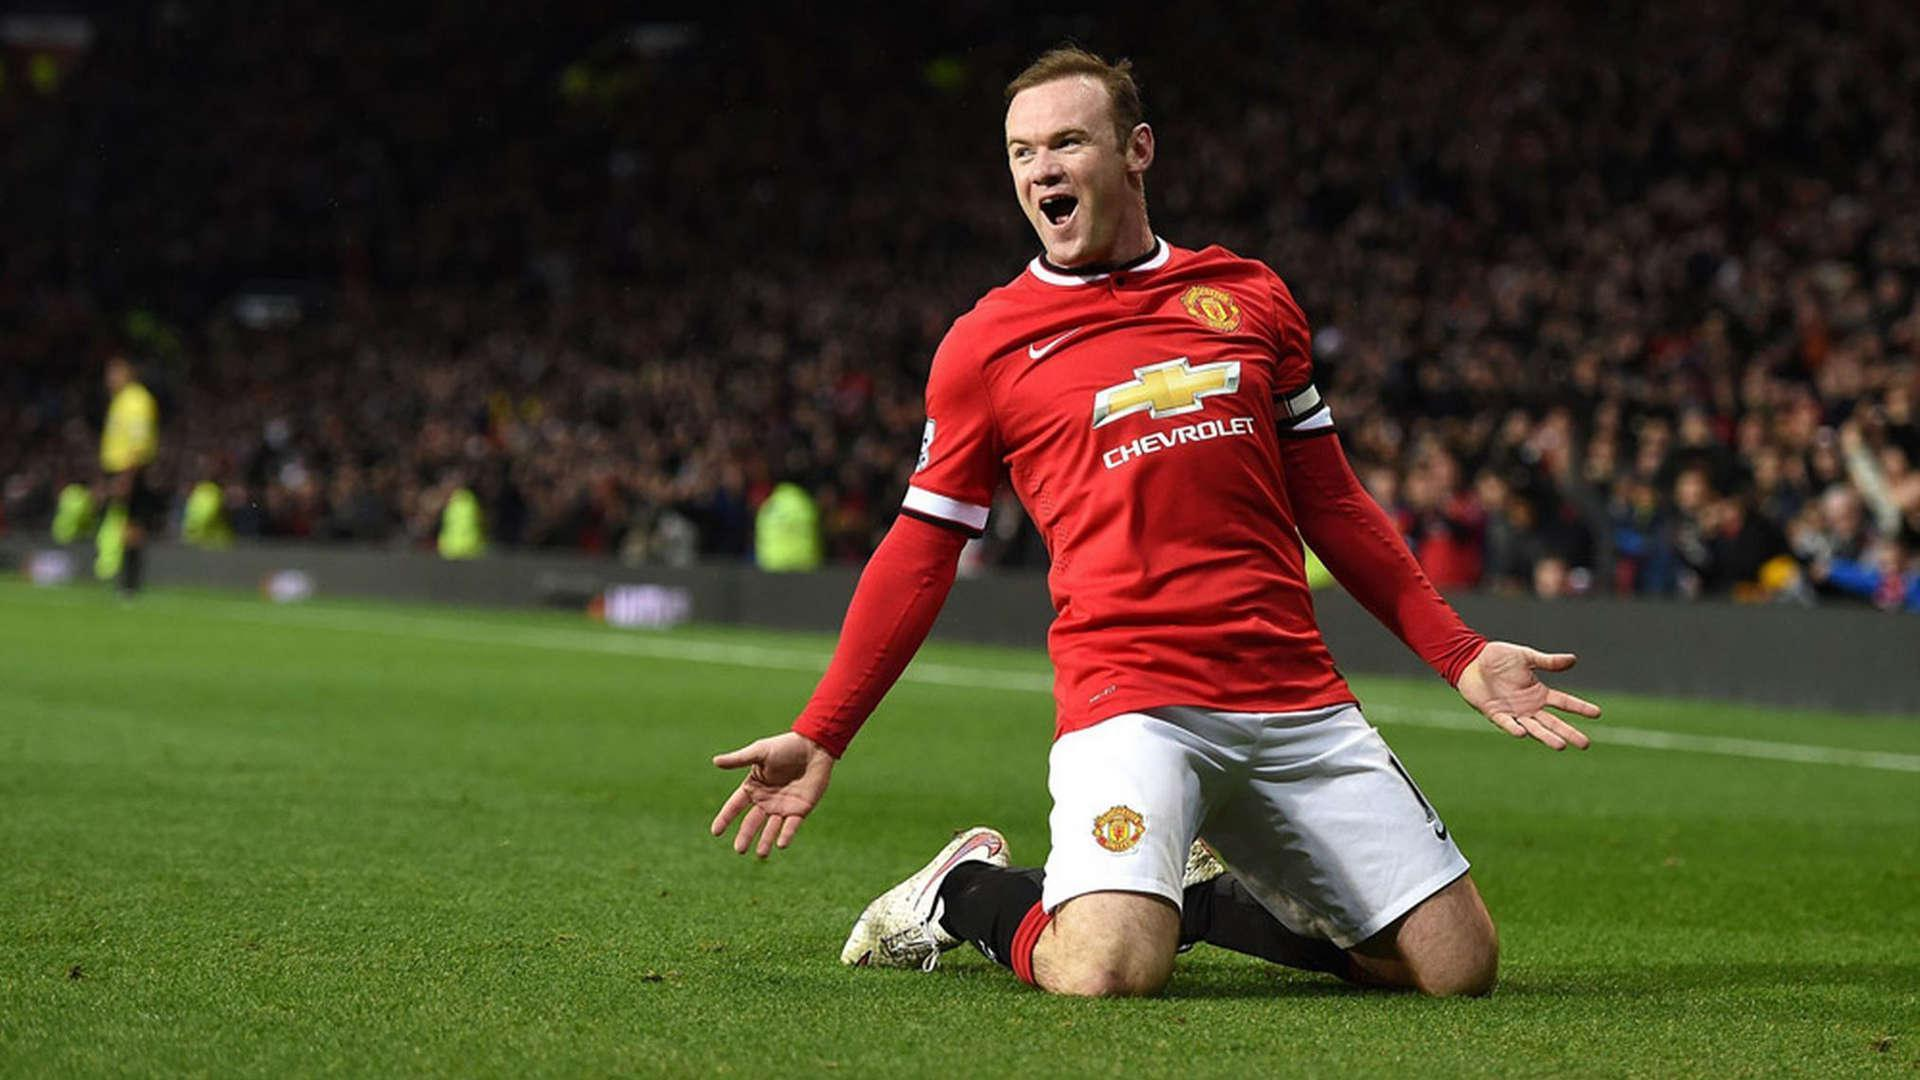 Wayne Rooney HD wallpaper for download